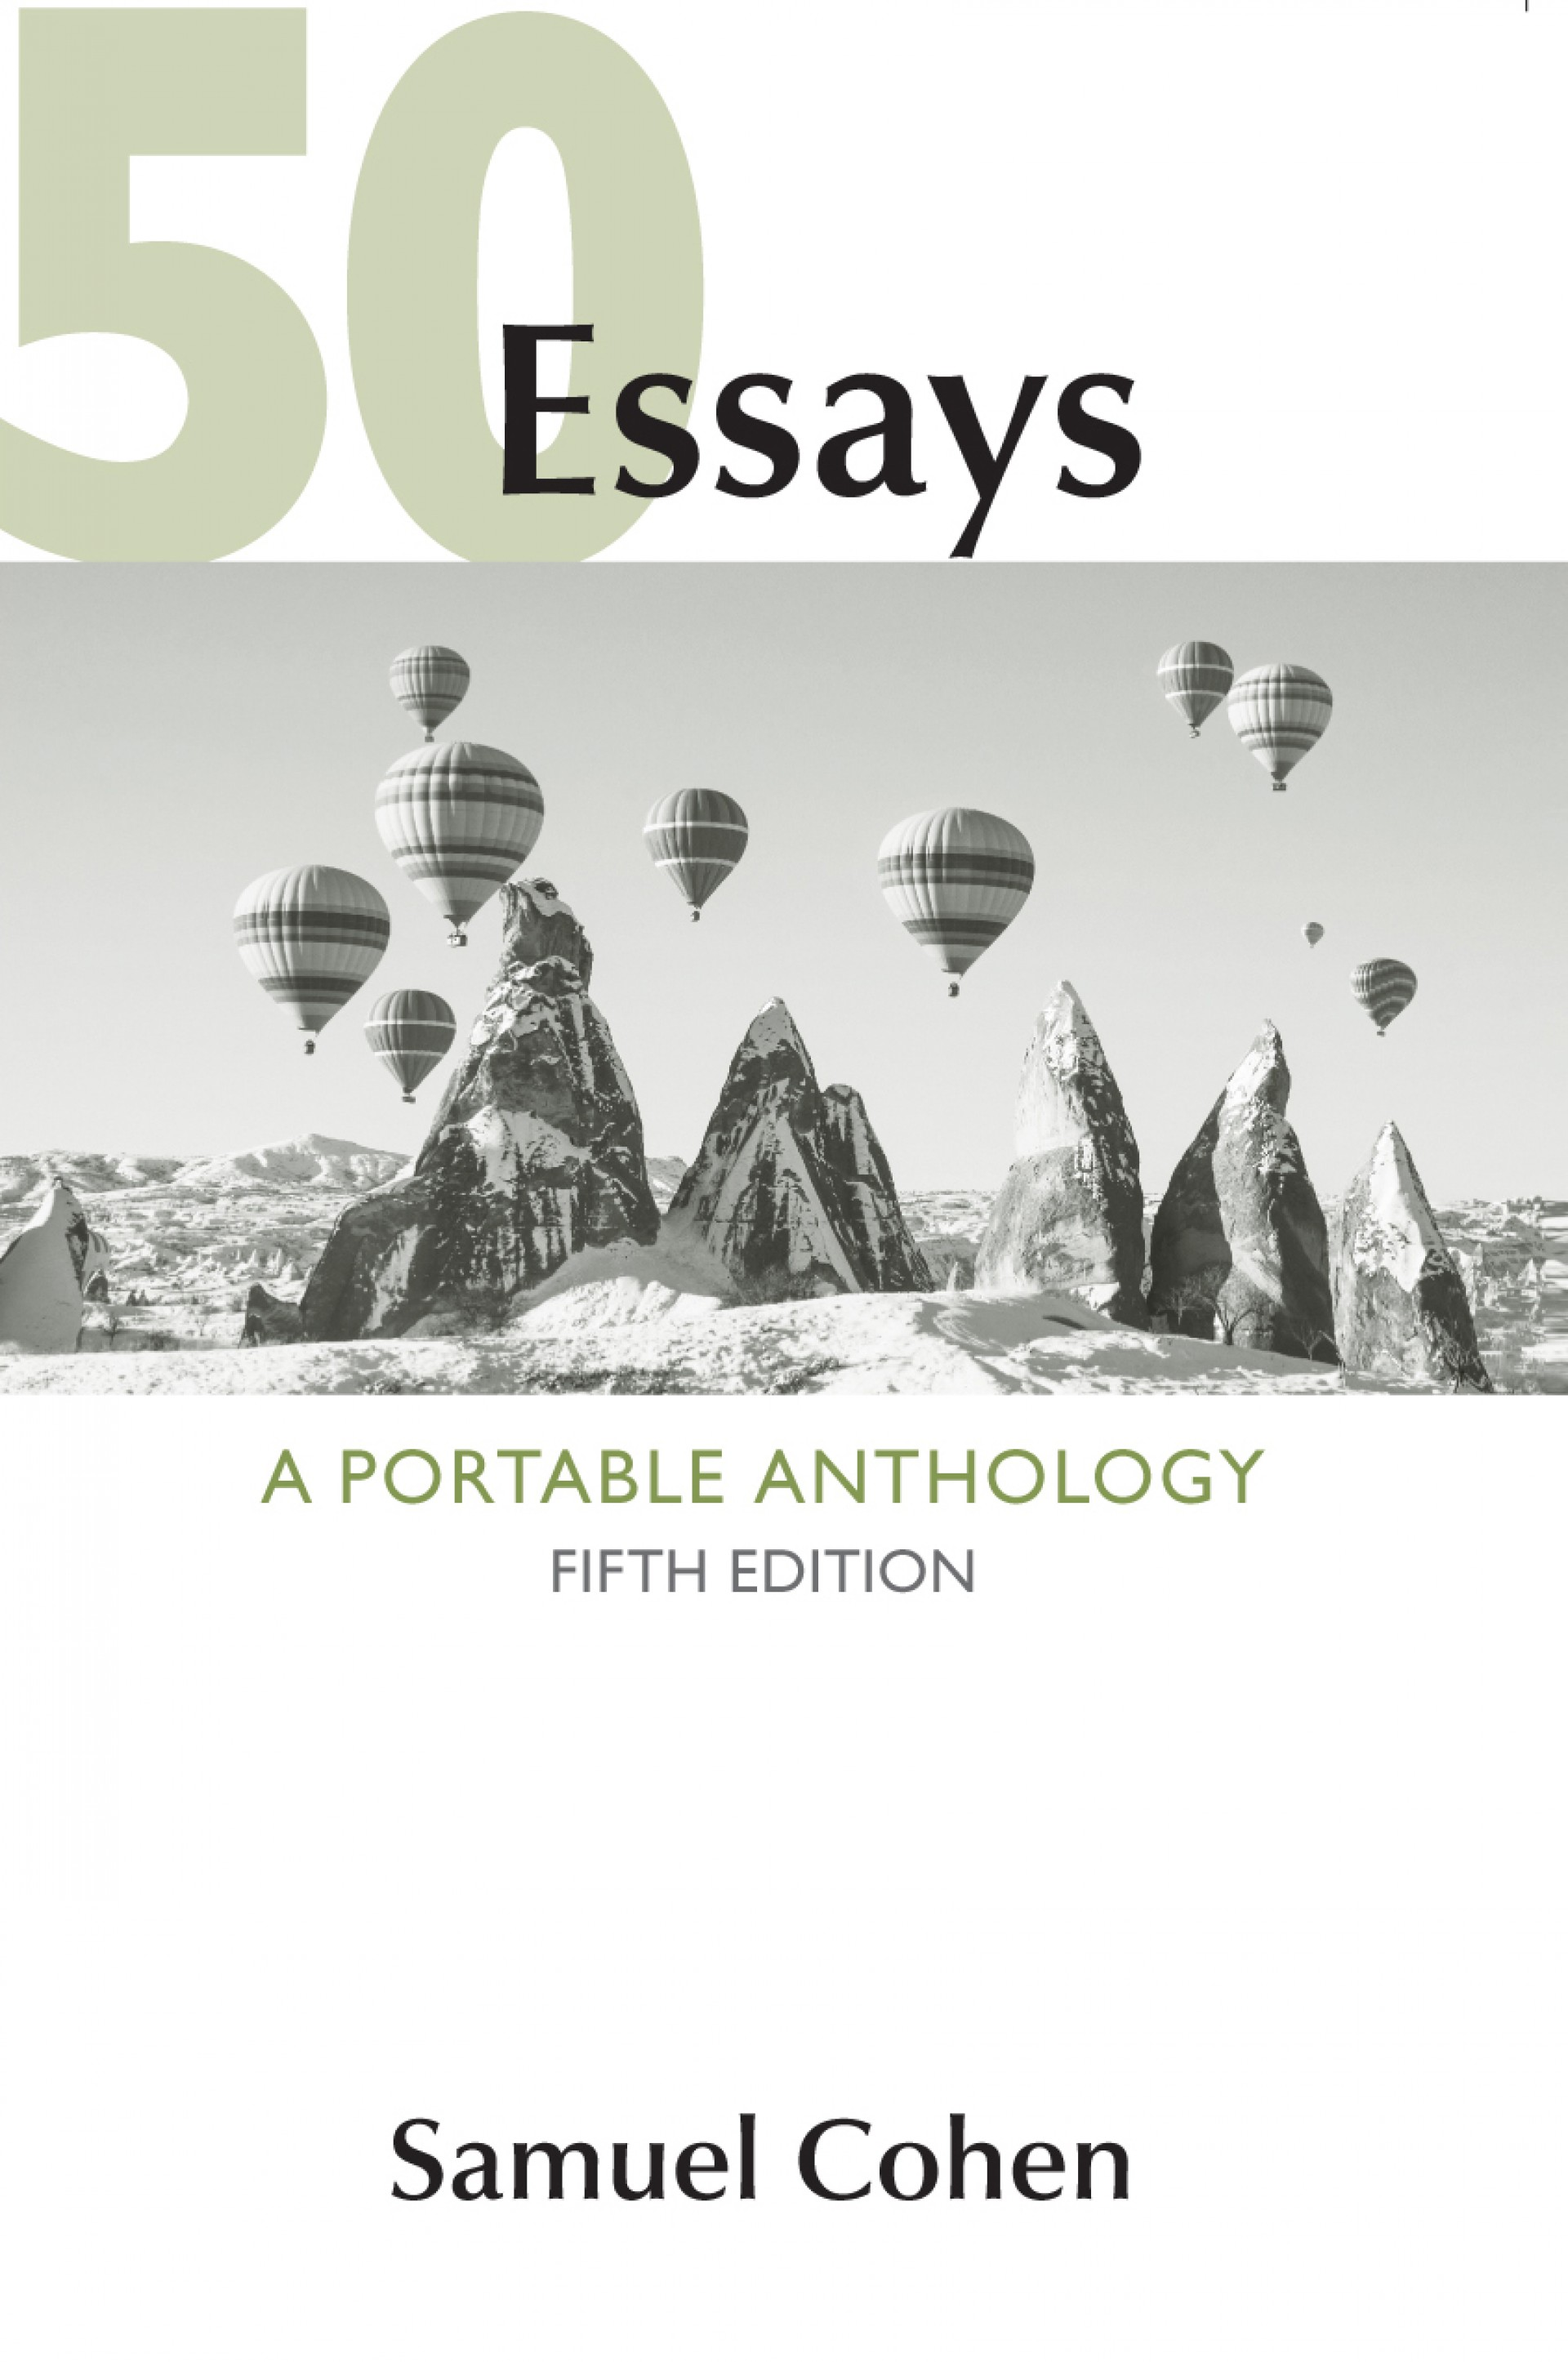 014 Essays 4th Edition Essay Phenomenal 50 Successful Harvard Application Pdf A Portable Anthology Answers Free 1920